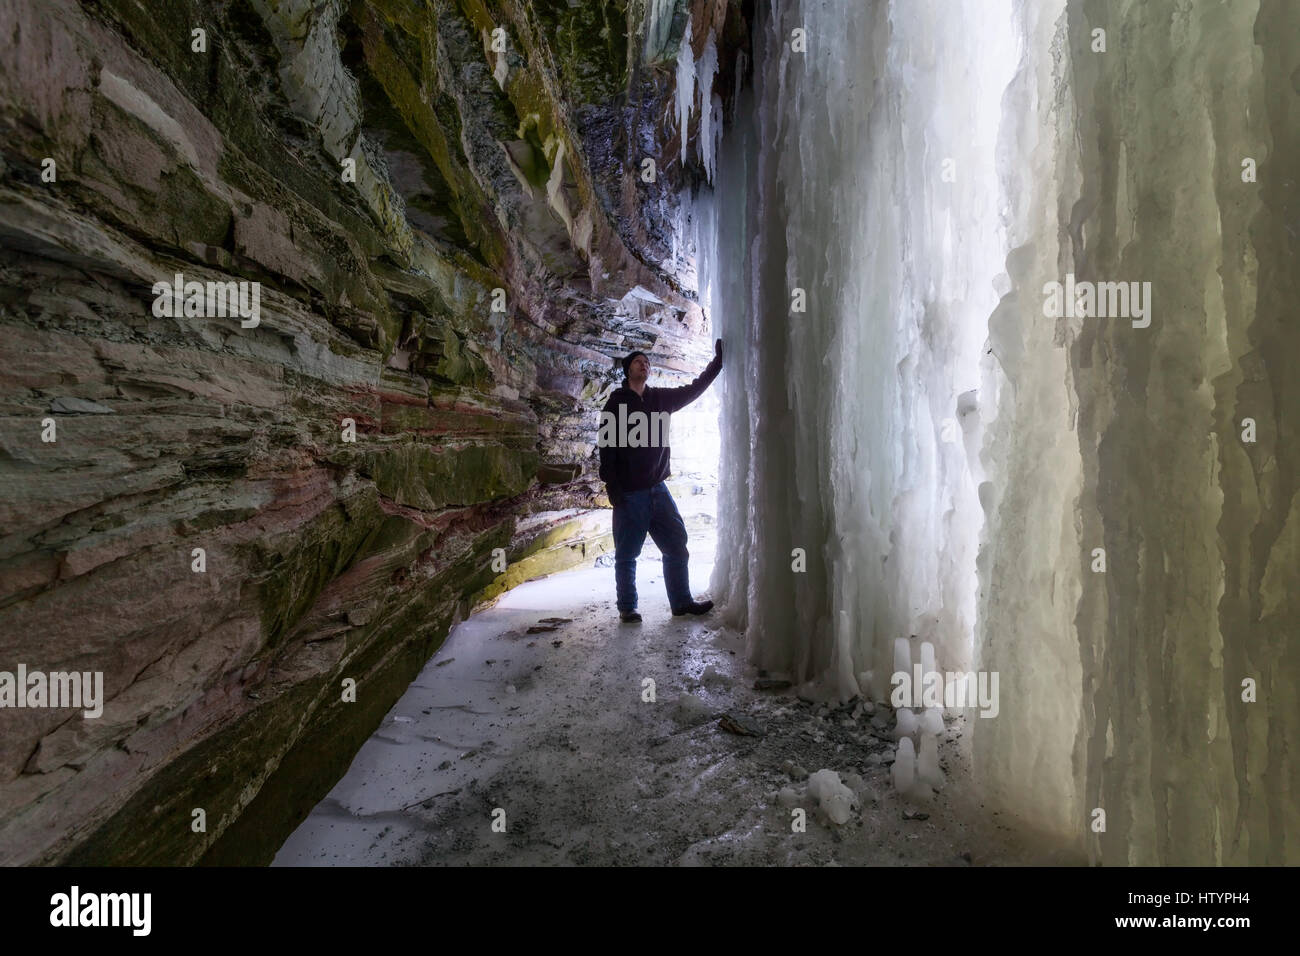 A man standing inside an ice cave formed behind Buttermilk Falls during the winter in Hamilton, Ontario, Canada. - Stock Image